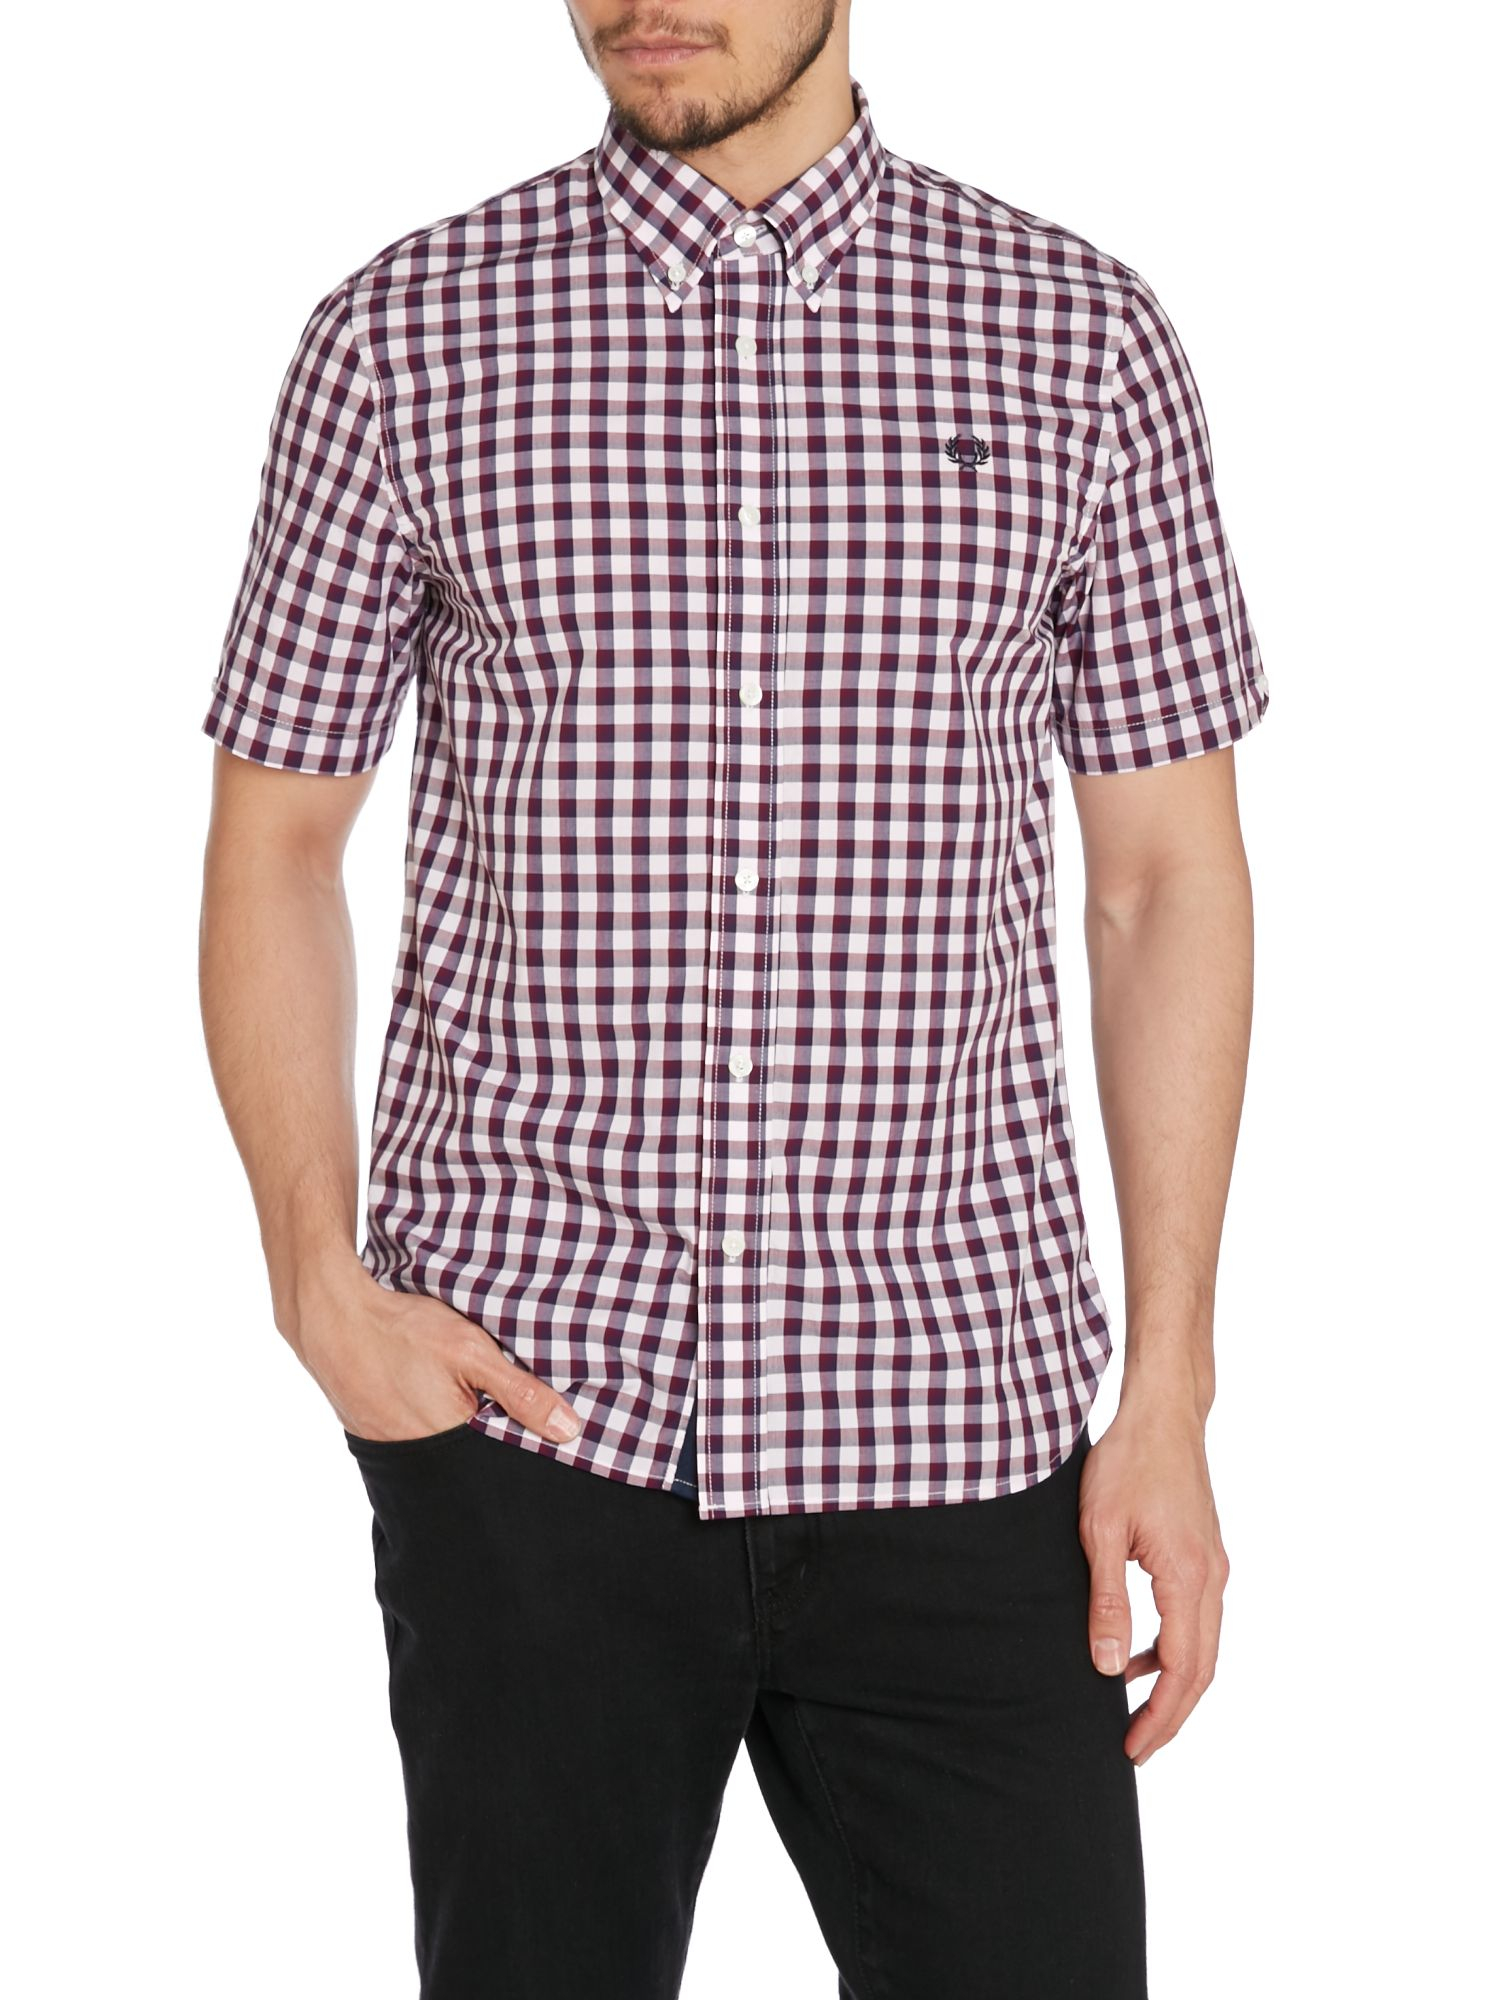 Fred perry pastel gingham classic fit short sleeve shirt for Men s purple gingham shirt